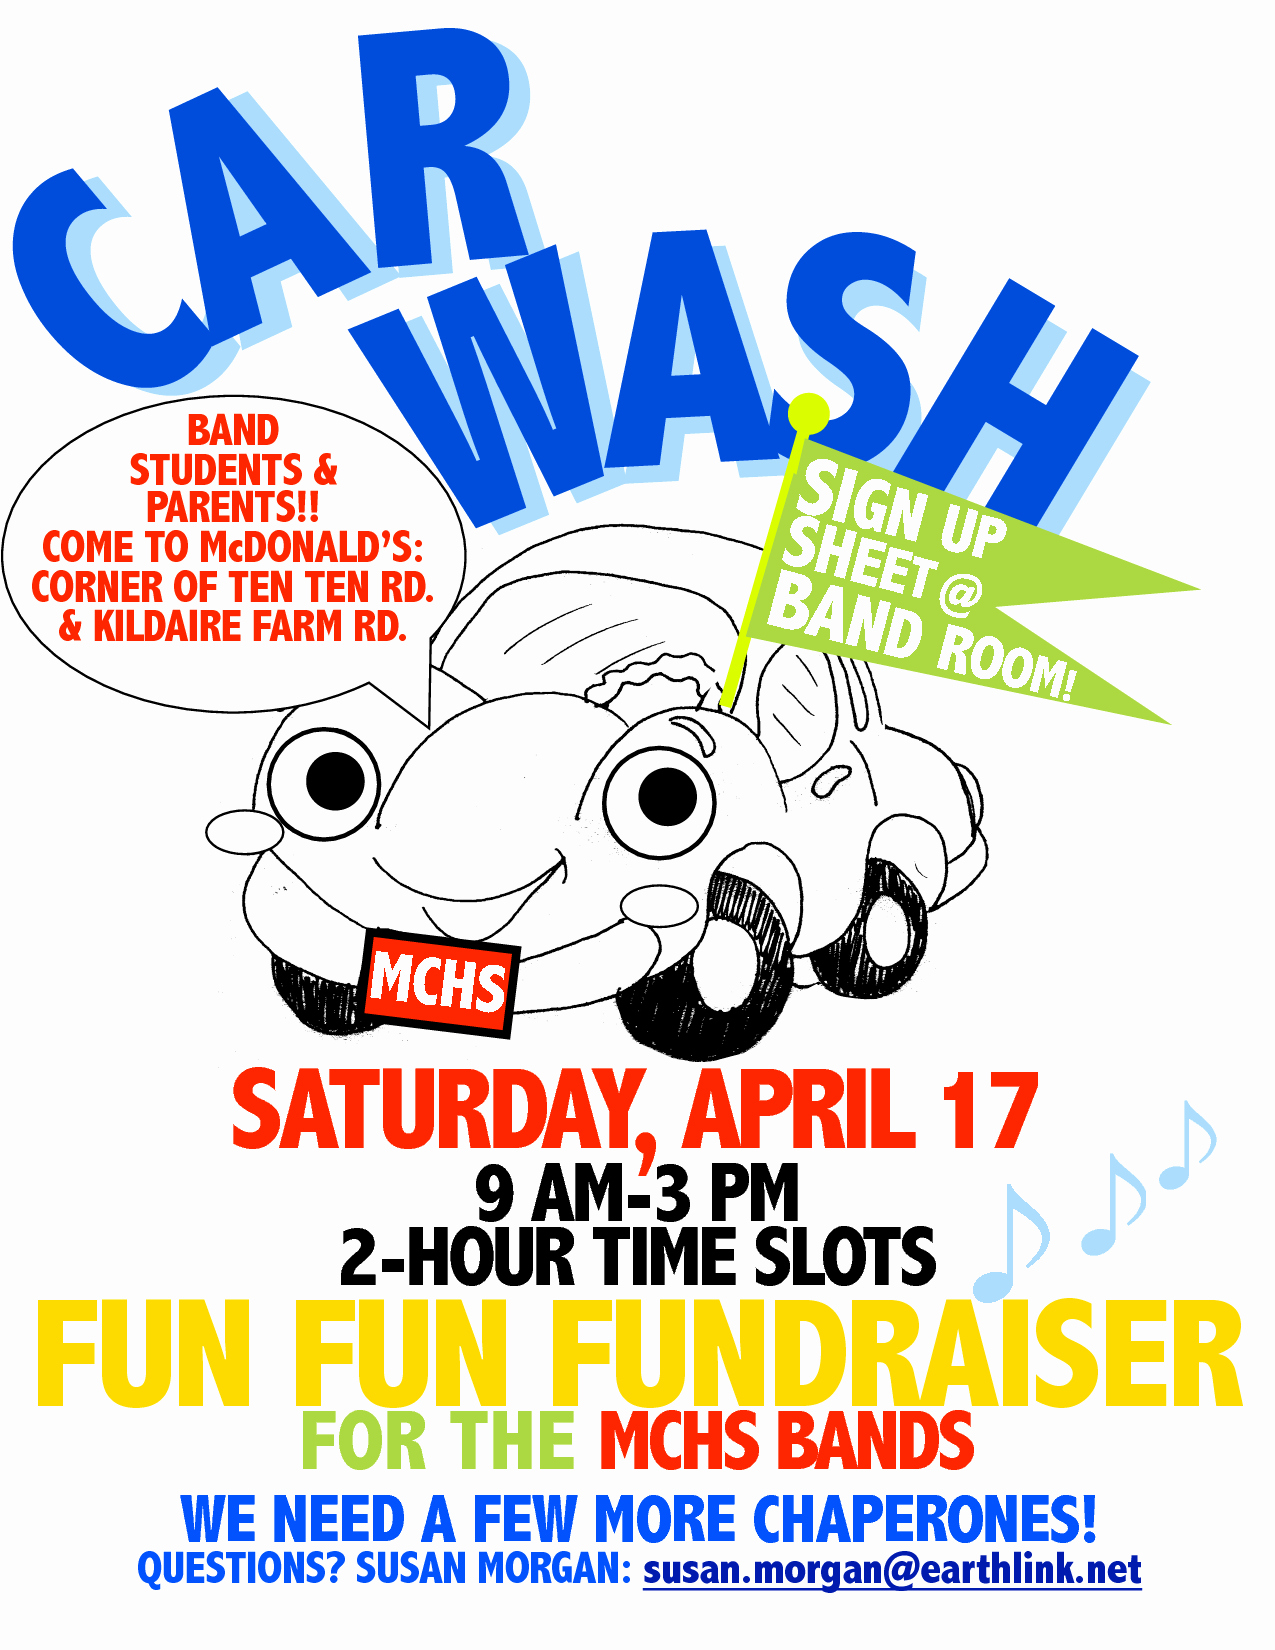 Car Wash Fundraiser Flyer Template New Fundraiser Flyer Template Word Joselinohouse